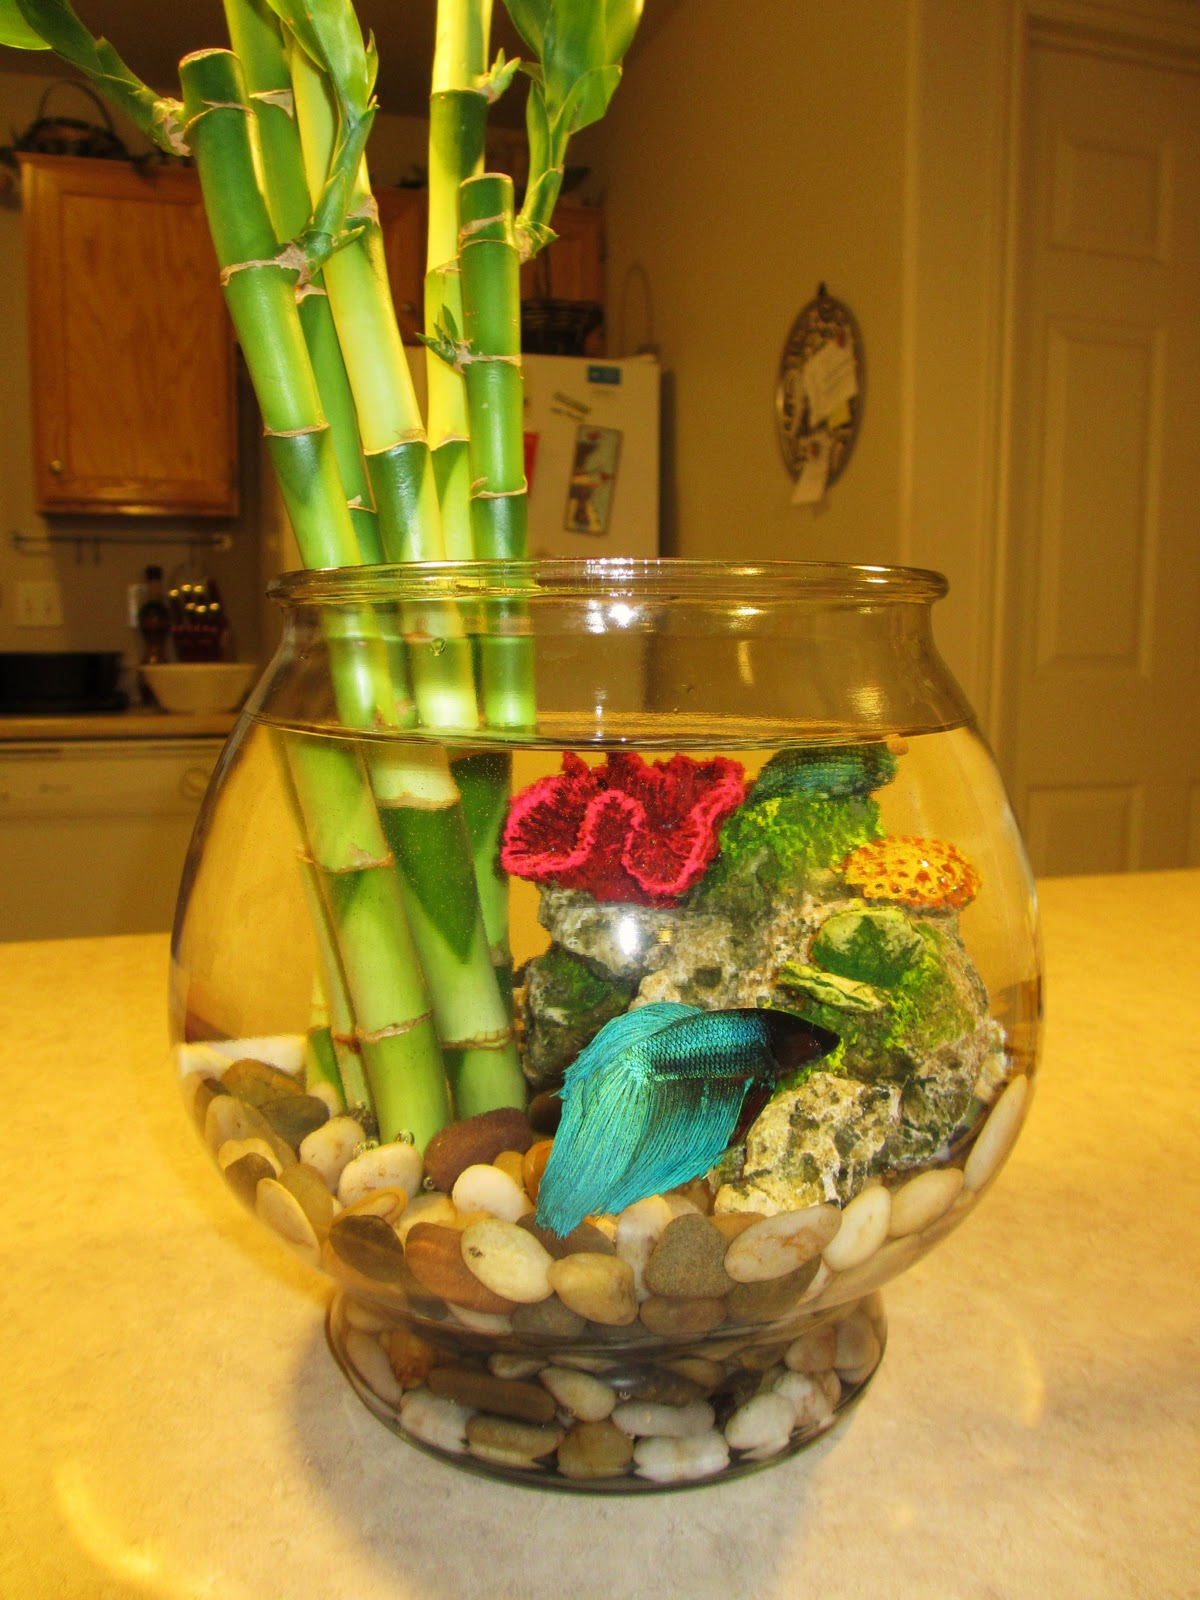 I love this idea i love bamboo and had a plant all through hs i love bamboo and had a plant all through hs my grandfather was an aquamarine biologist and he passed away a few years ago i pinteres reviewsmspy